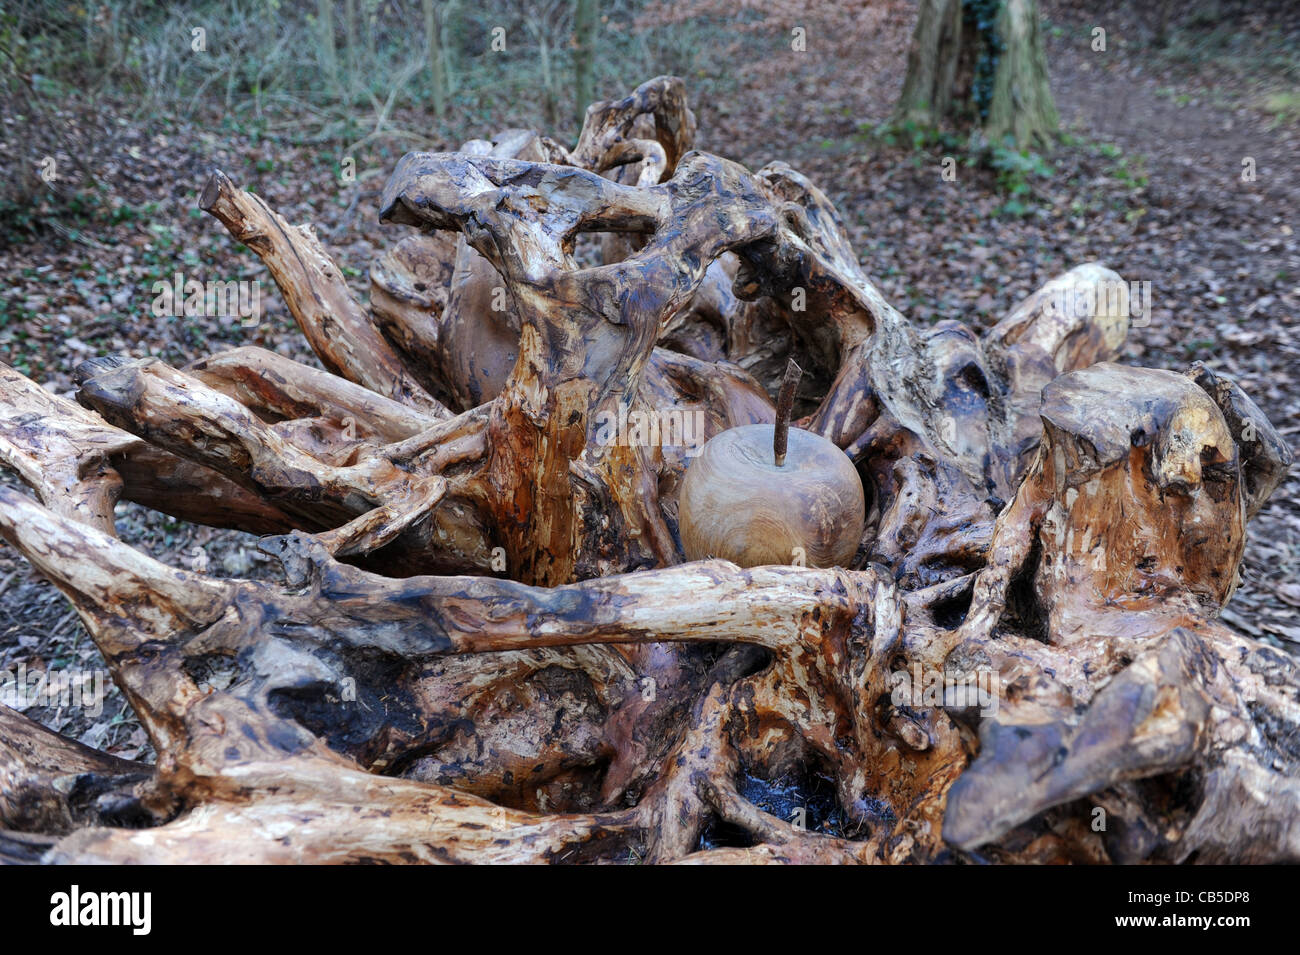 Tree root stumpery with a wood turned apple - Stock Image